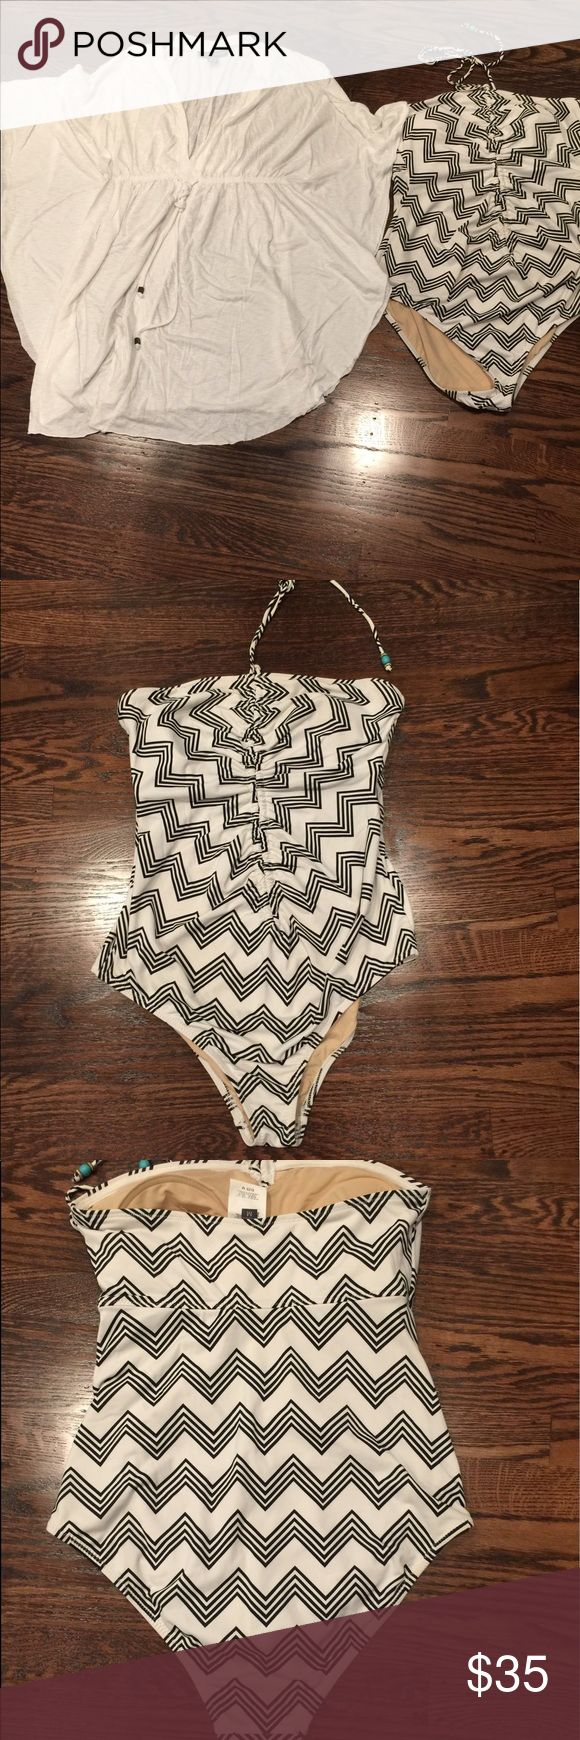 A Pea in the Pod bathing set cover up set A Pea in the Pod maternity bathing suit with cover up set both size M.  Worn once only, like new condition. A Pea in the Pod Swim One Pieces